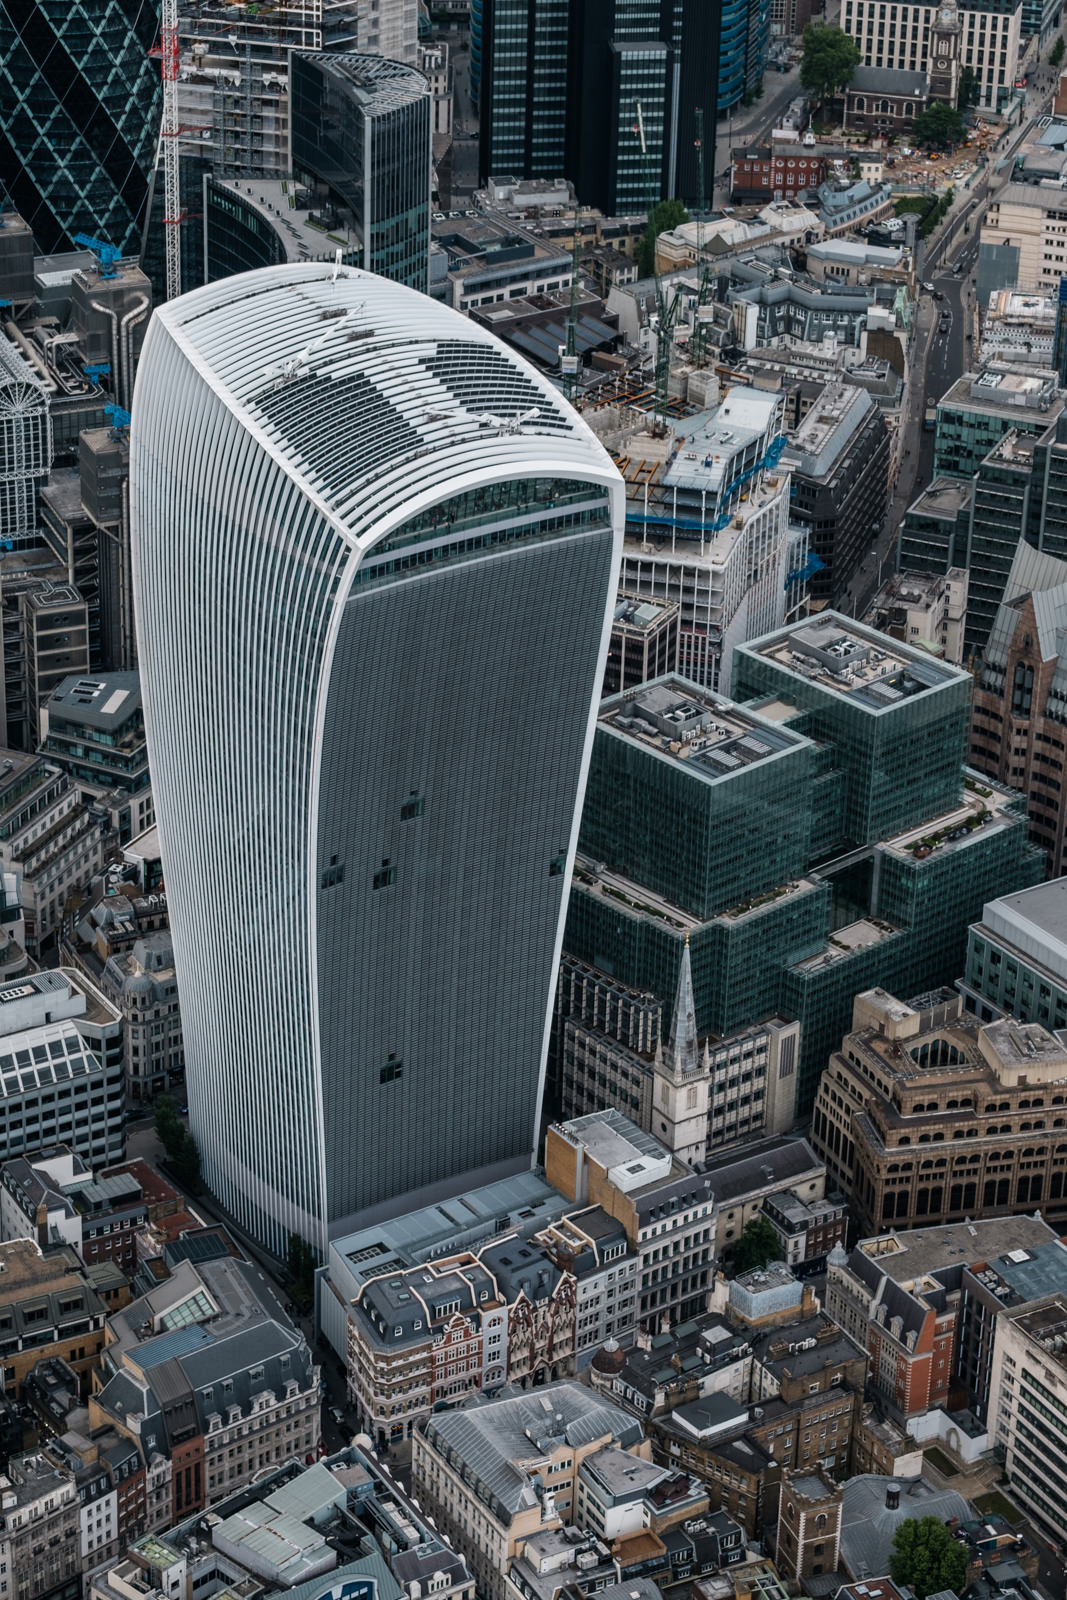 Walkie-Talkie - with 50-140mm f2.8 @50mm, f4, iso200, 1/1000s